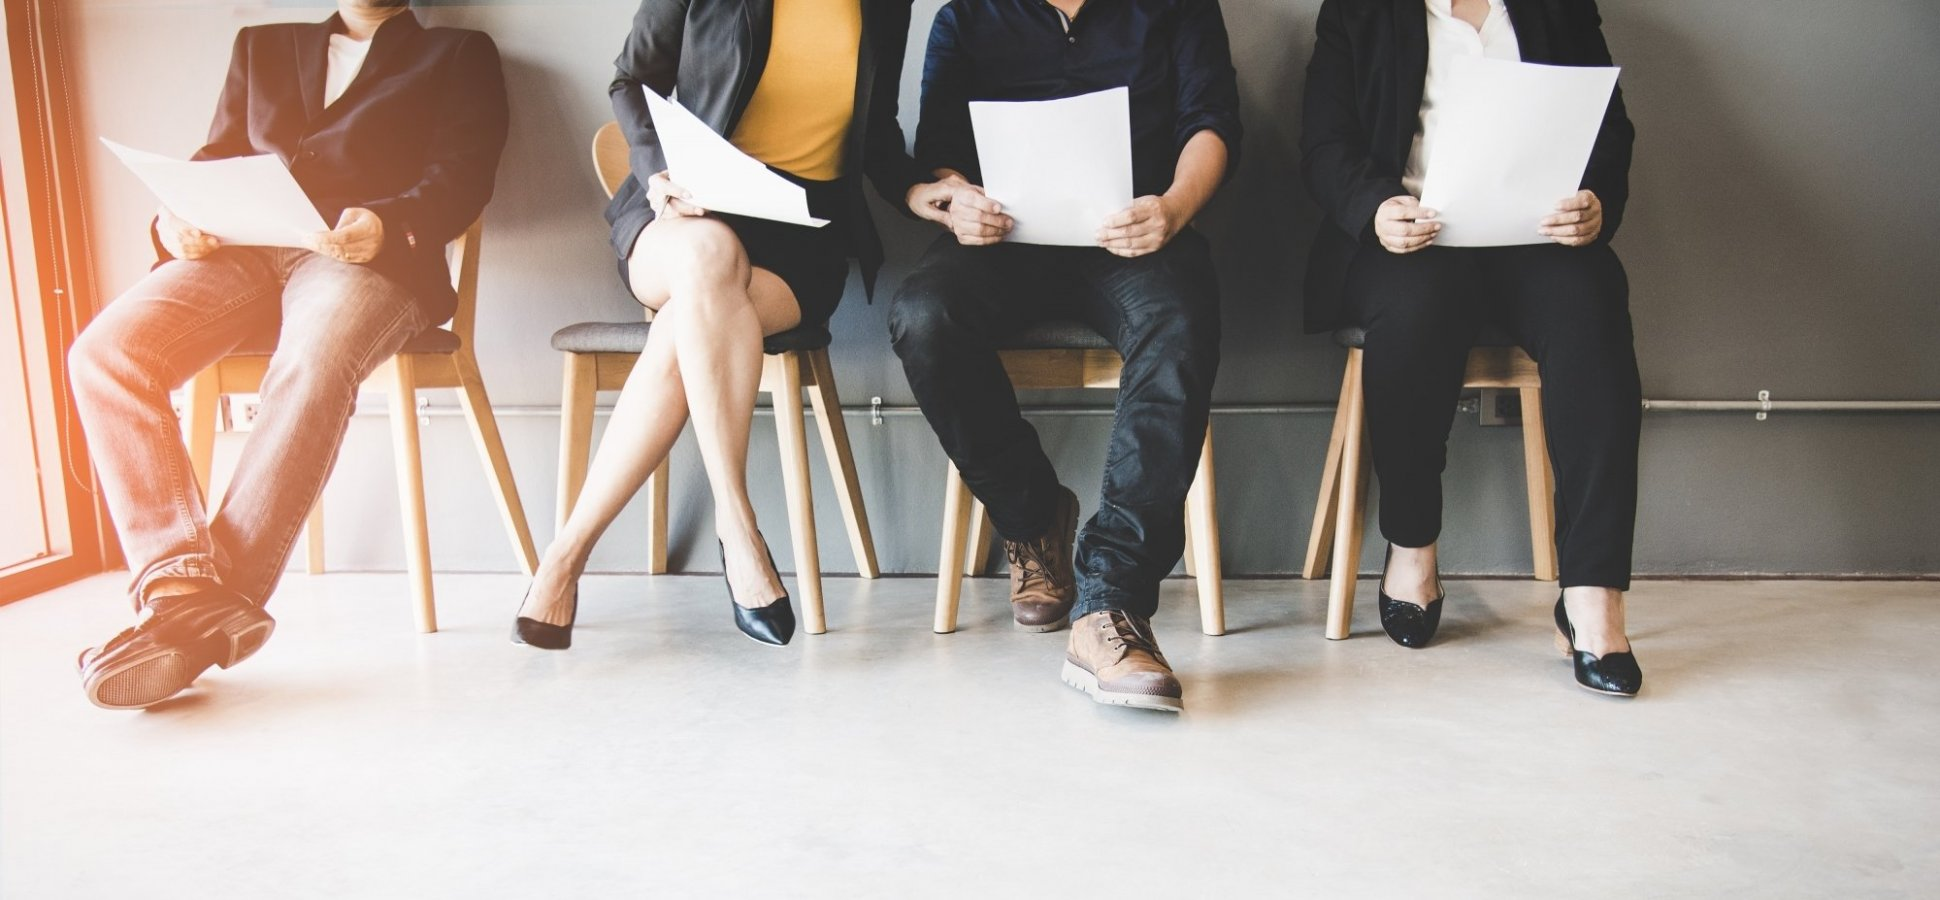 Doing This 1 Thing Will Make You Fail Every Job Interview